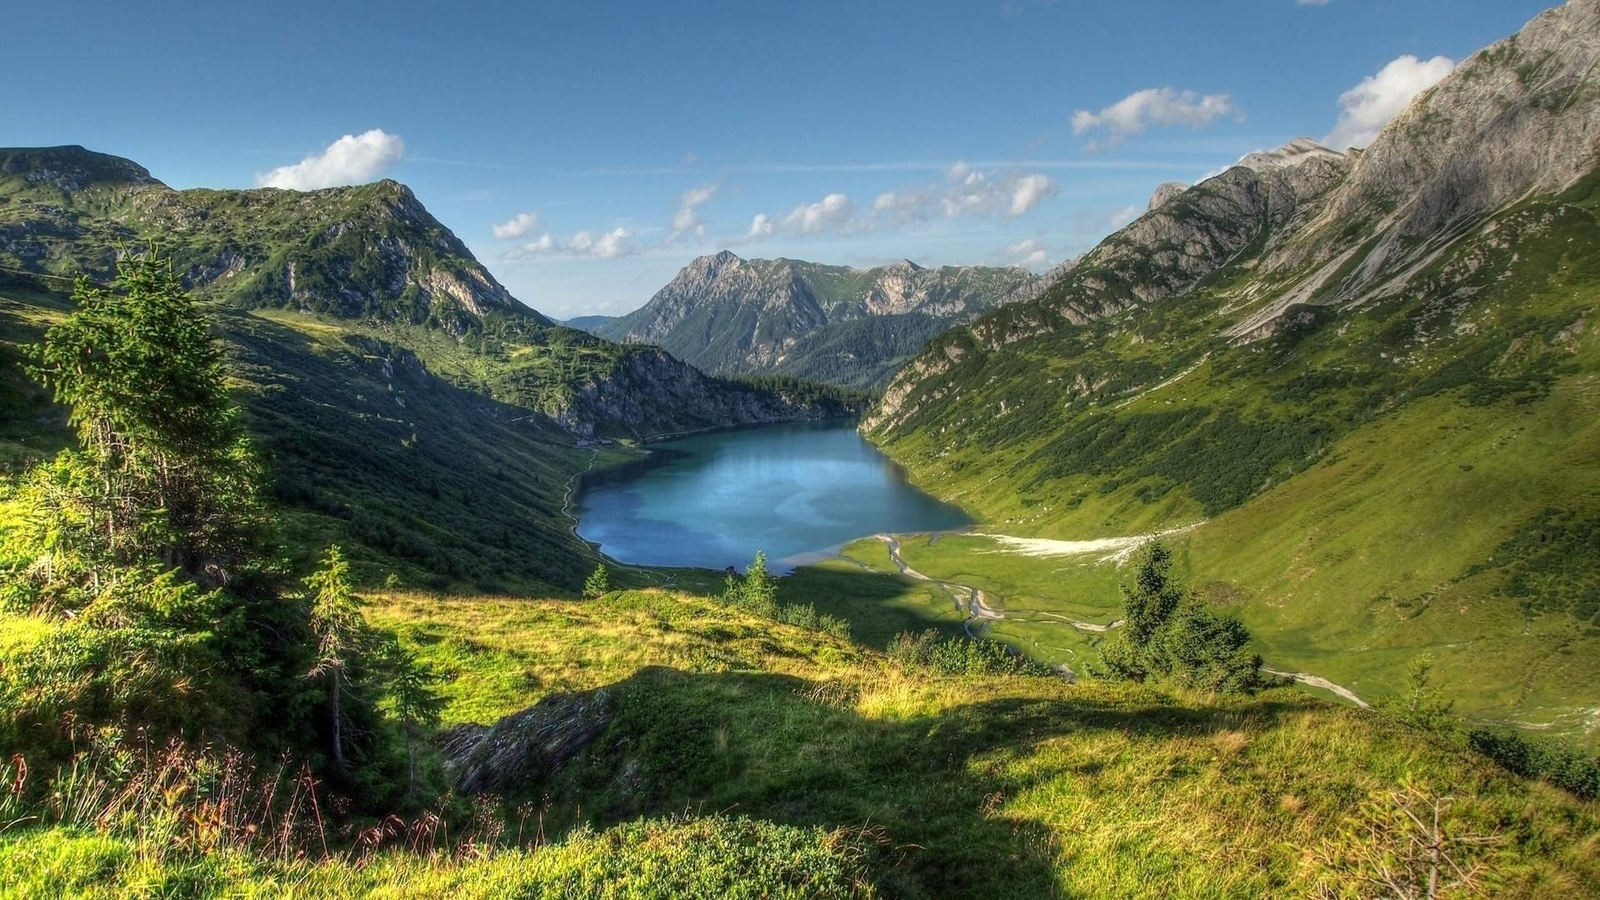 landscape, nature, mountains, lake, sky, clouds